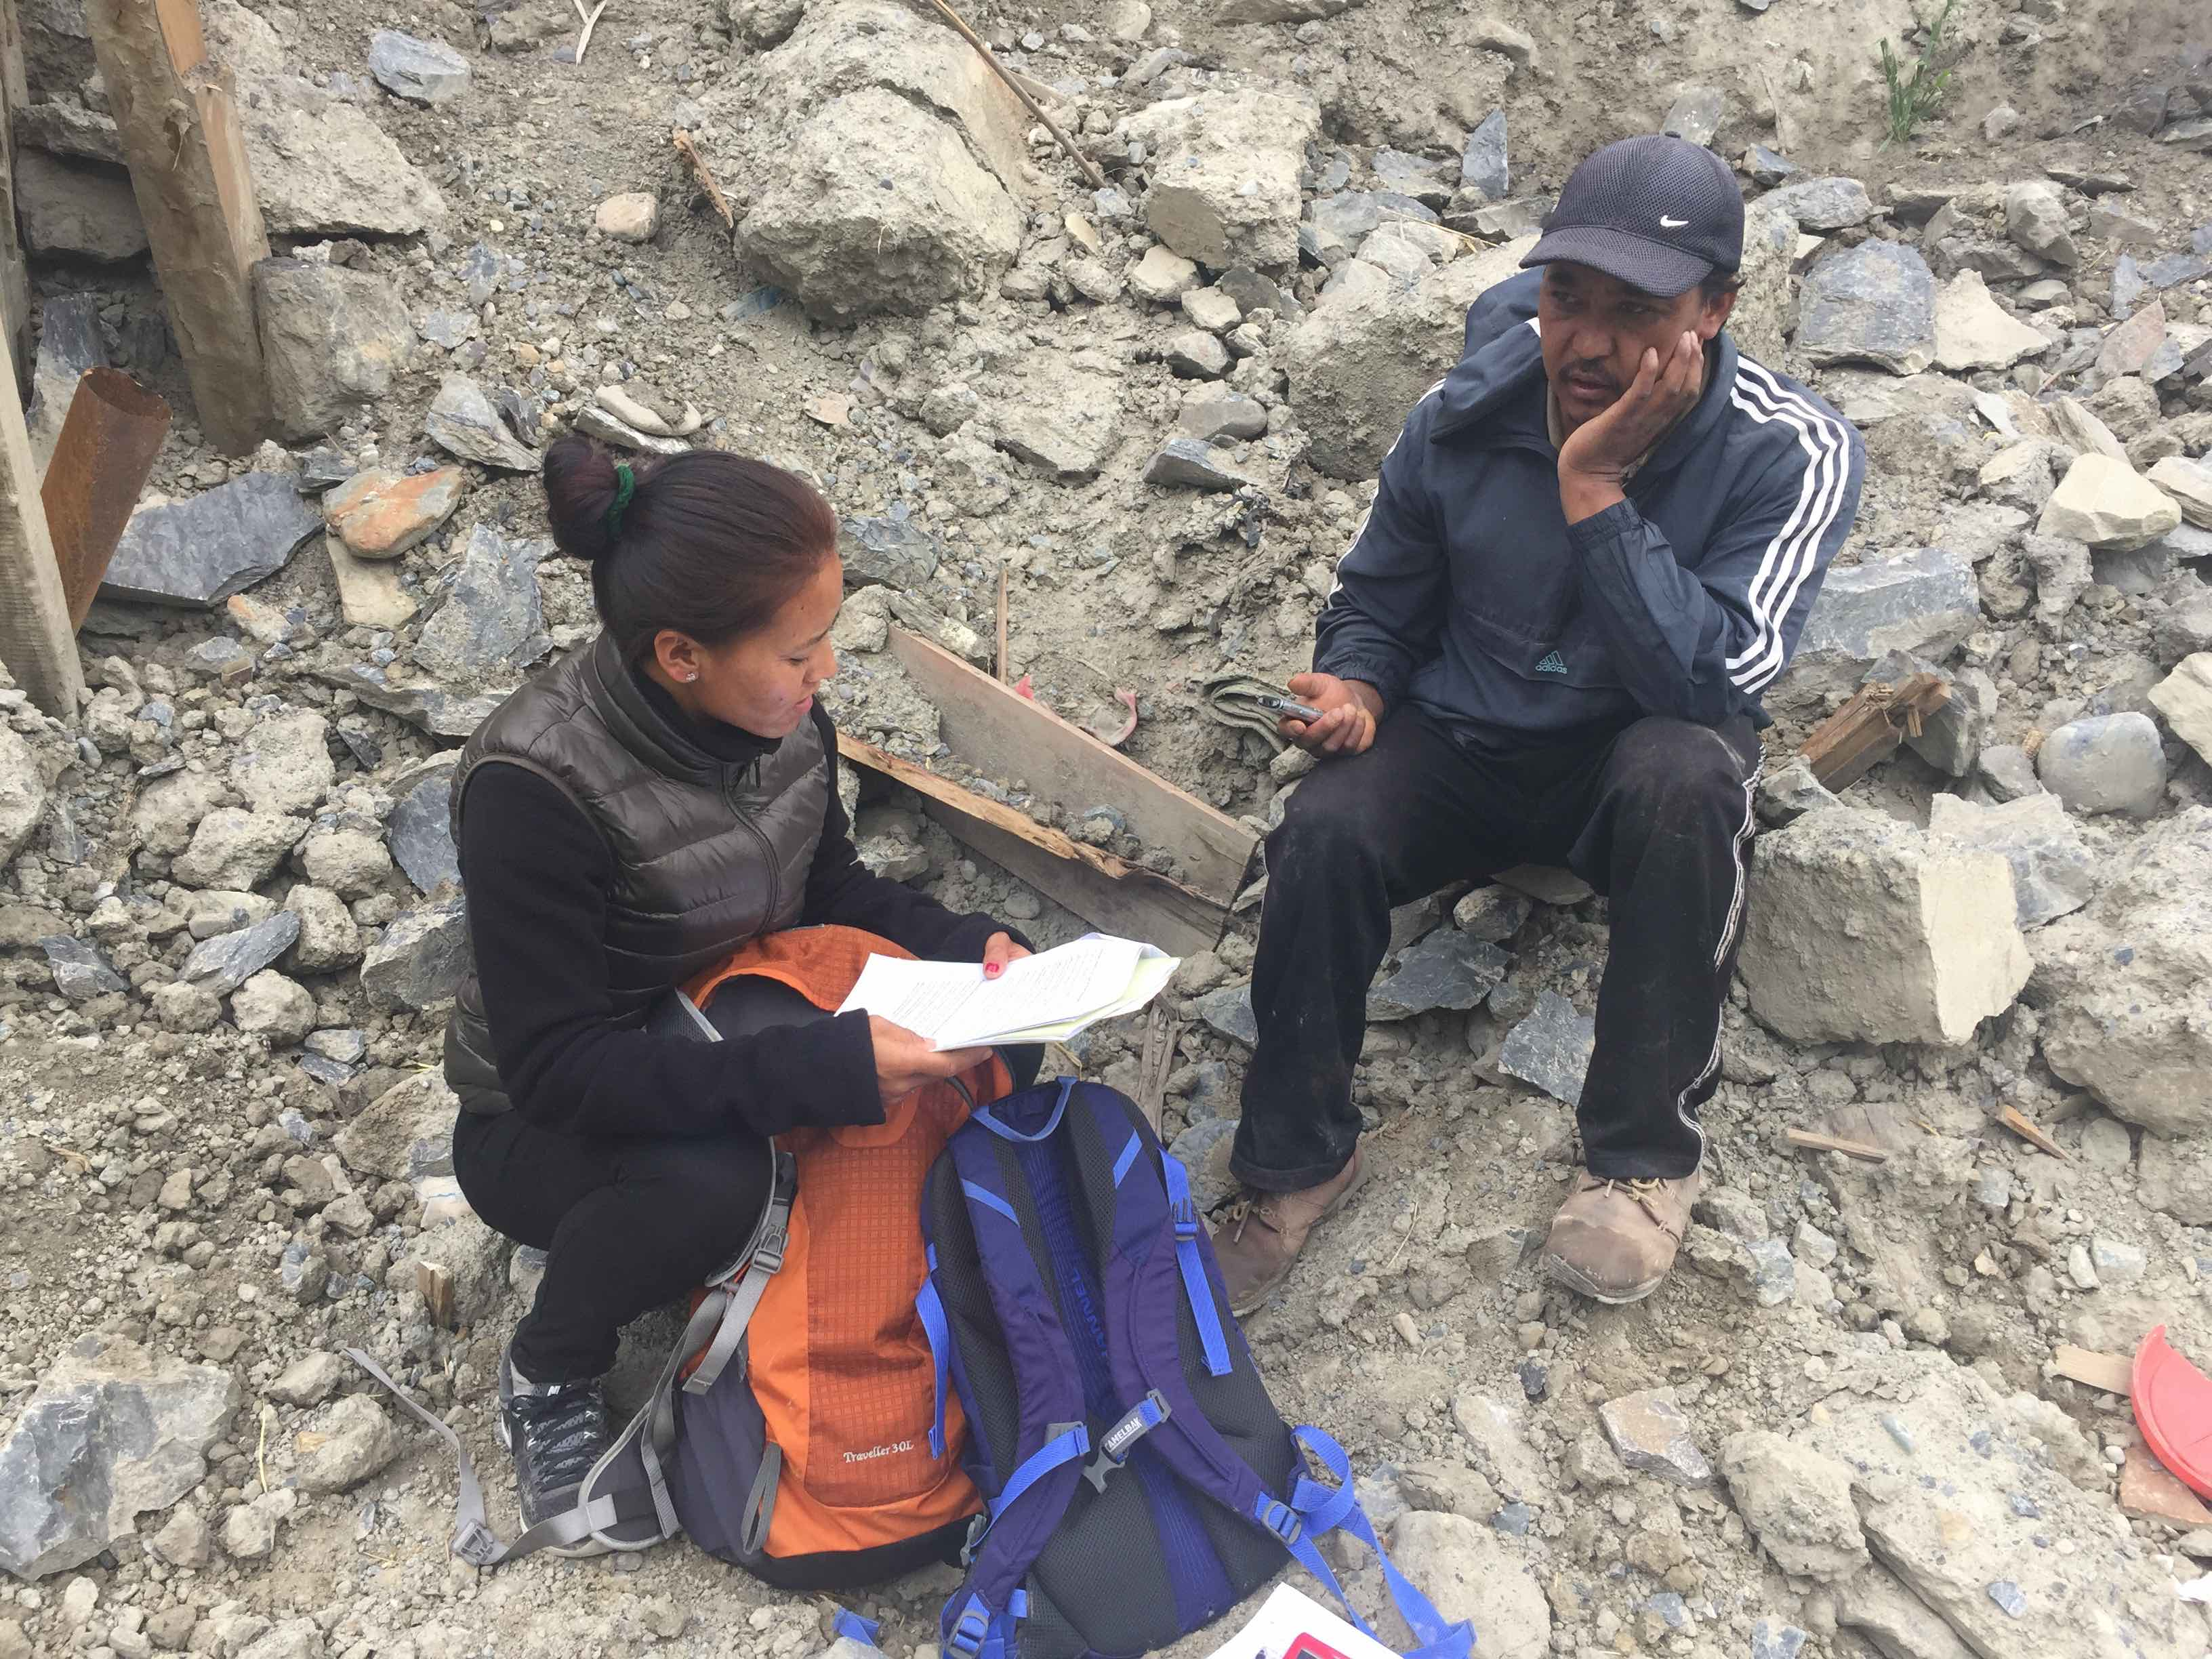 a researcher interviews a quake survivor in Nepal